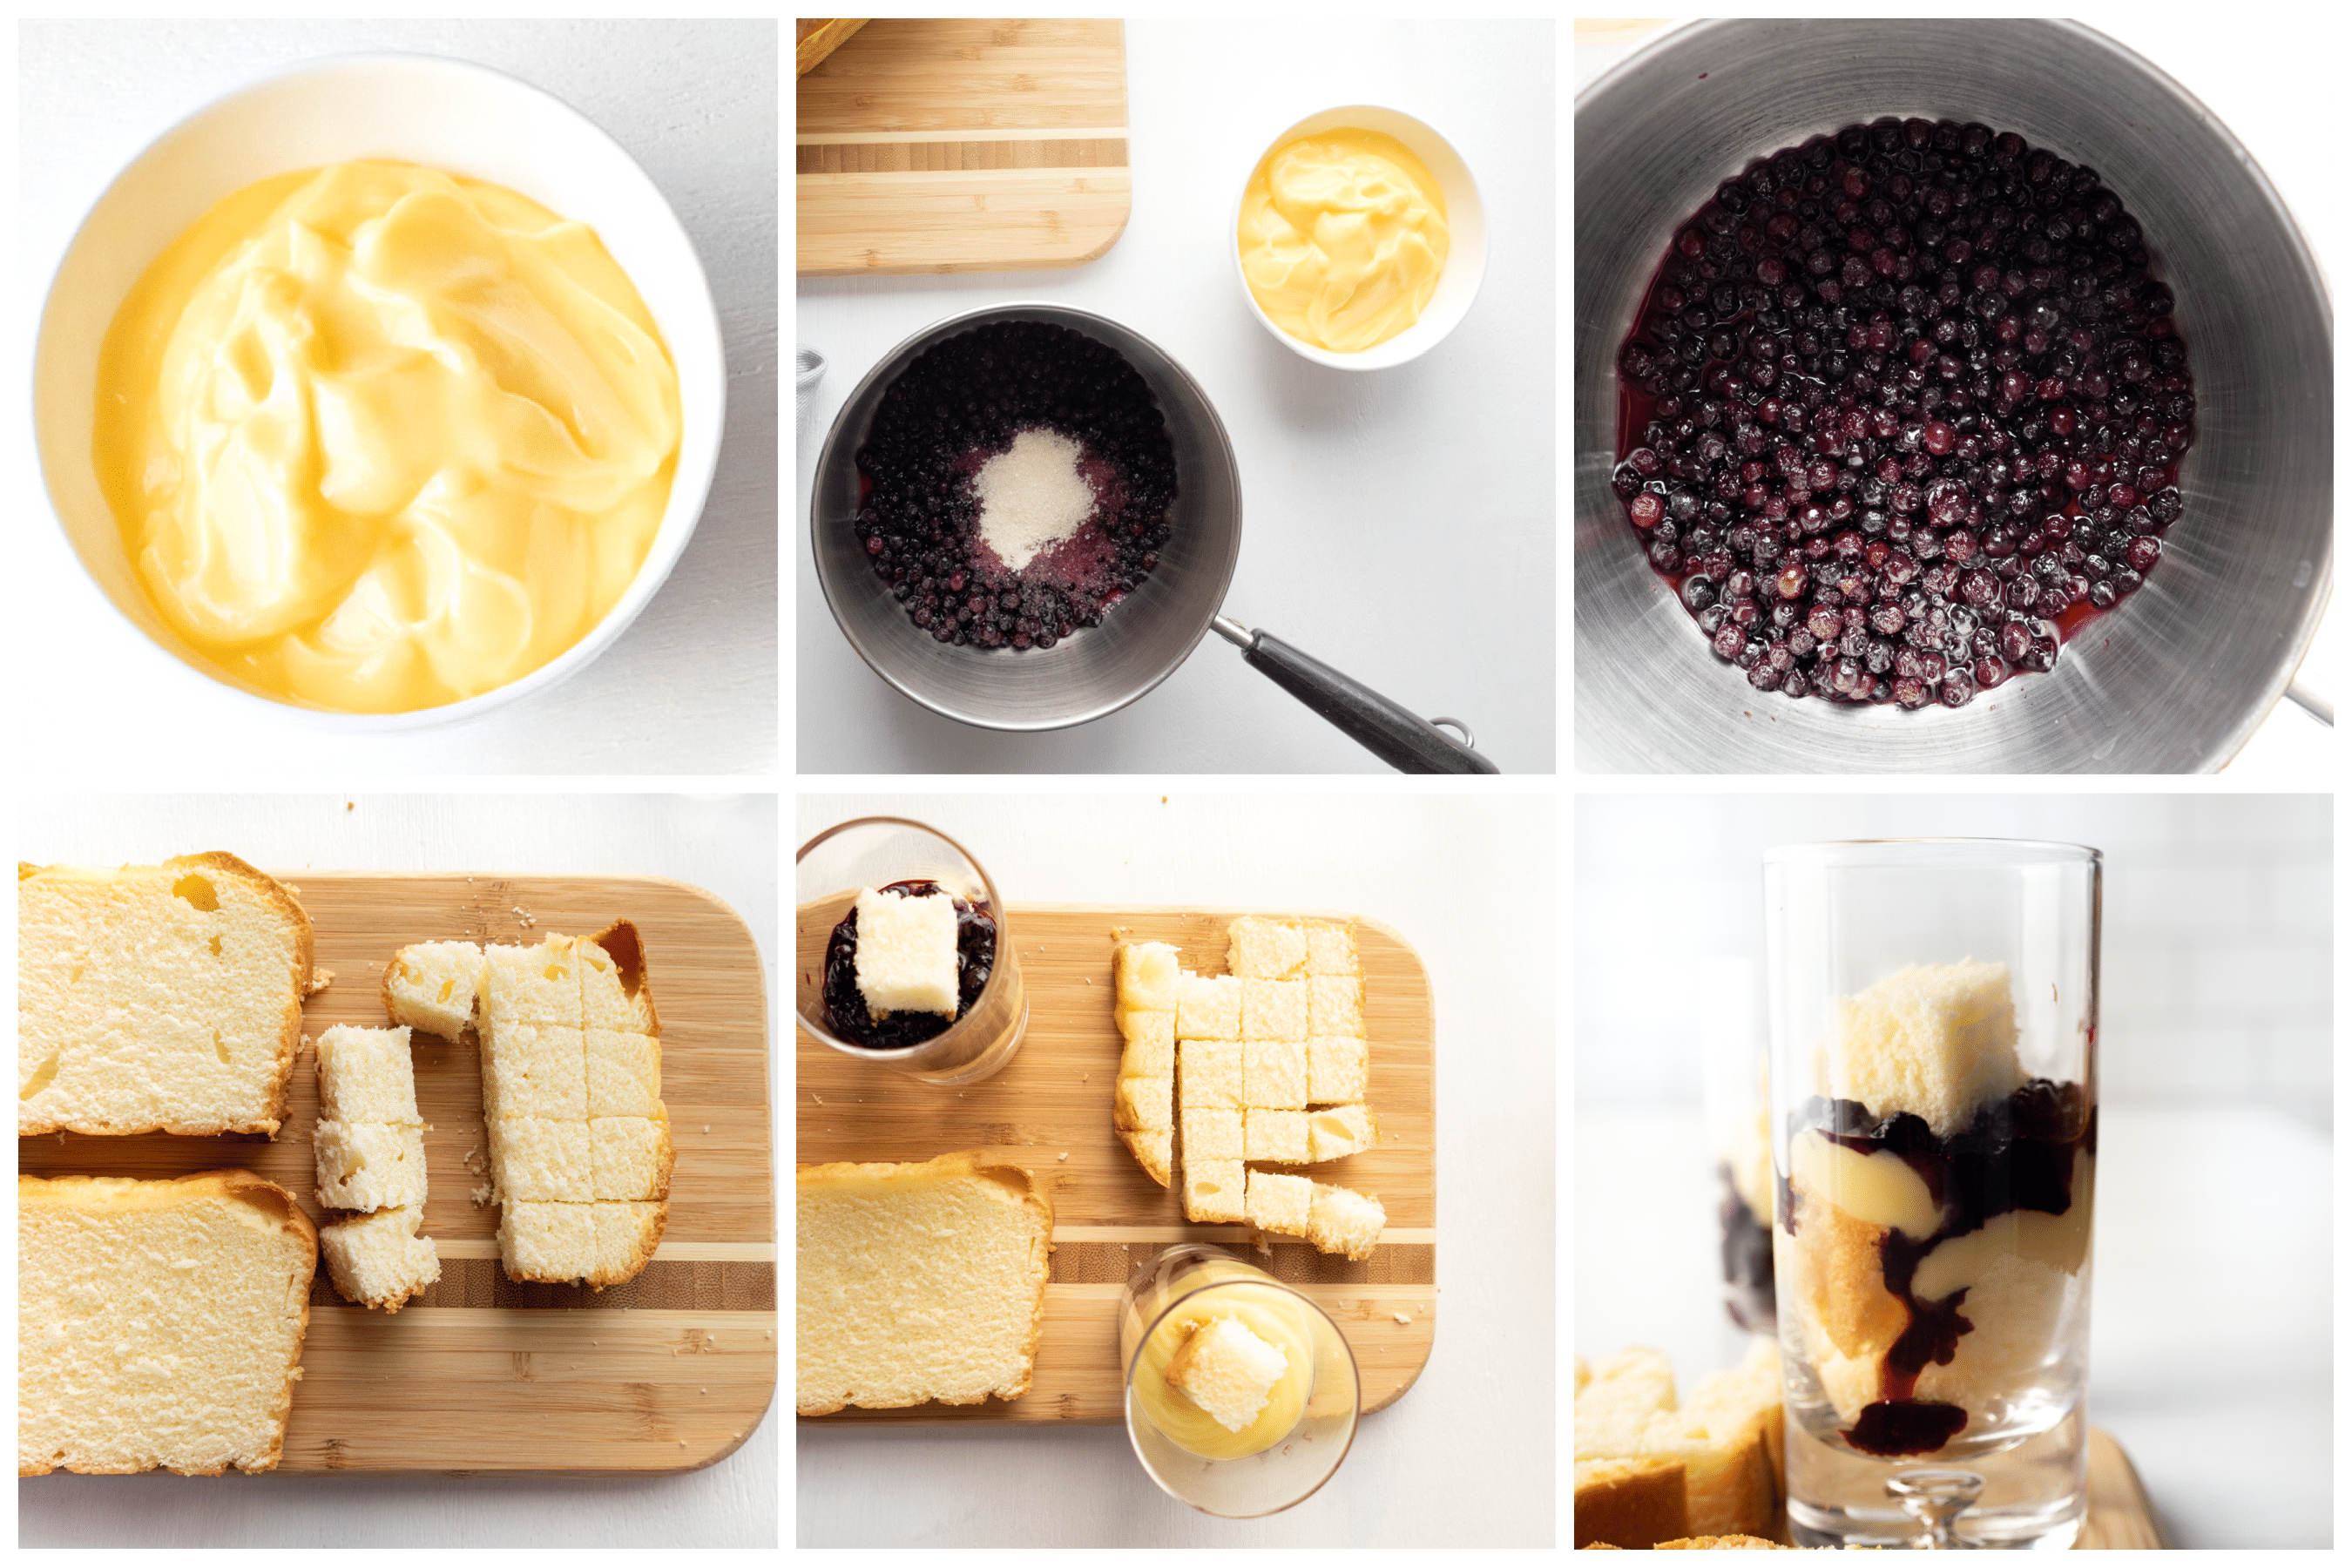 Pictures show steps needed to make this recipe.